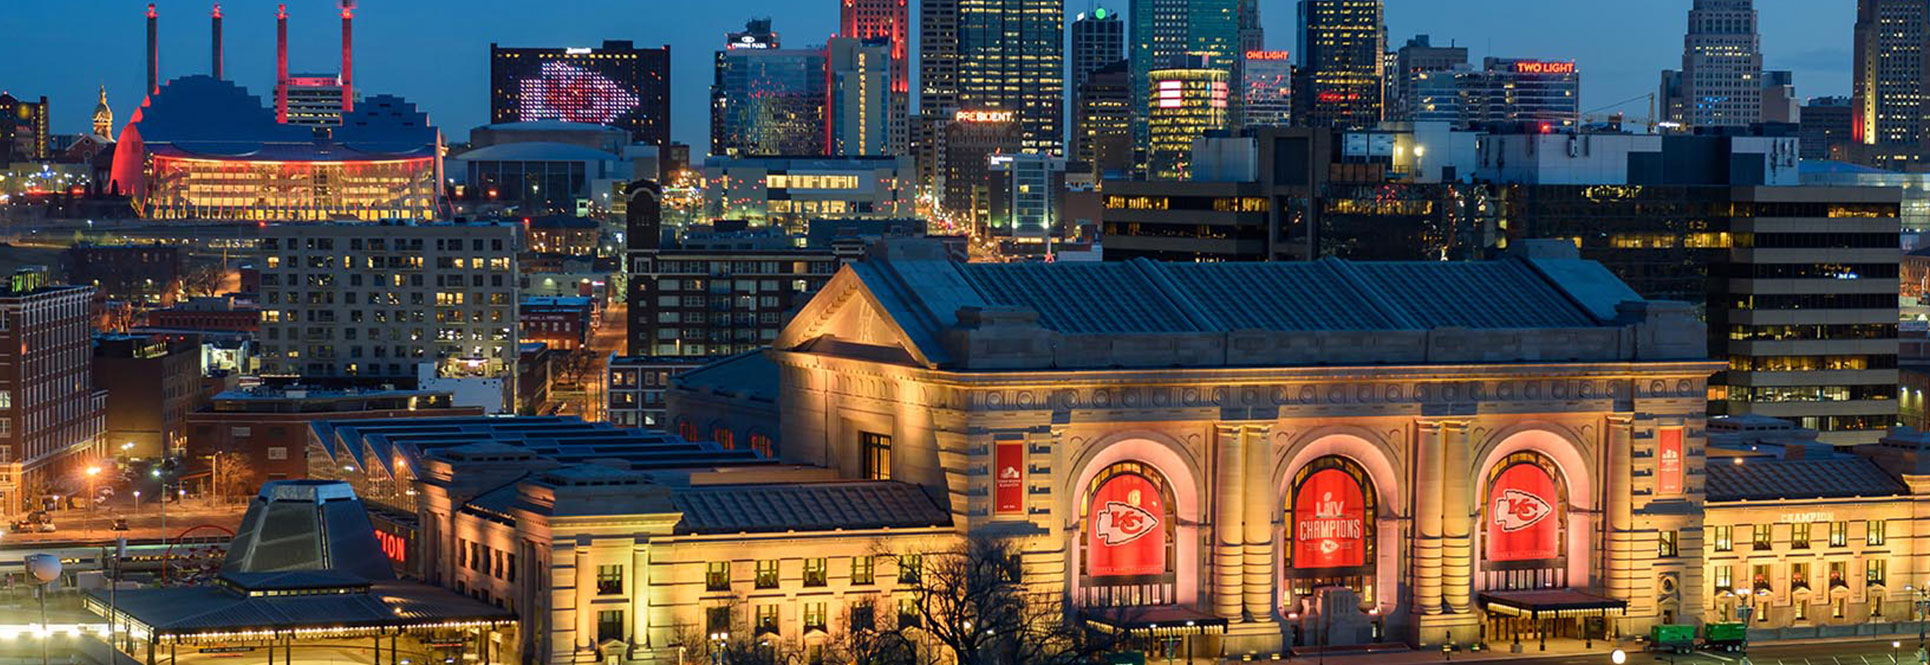 Union Station in Kansas City MO